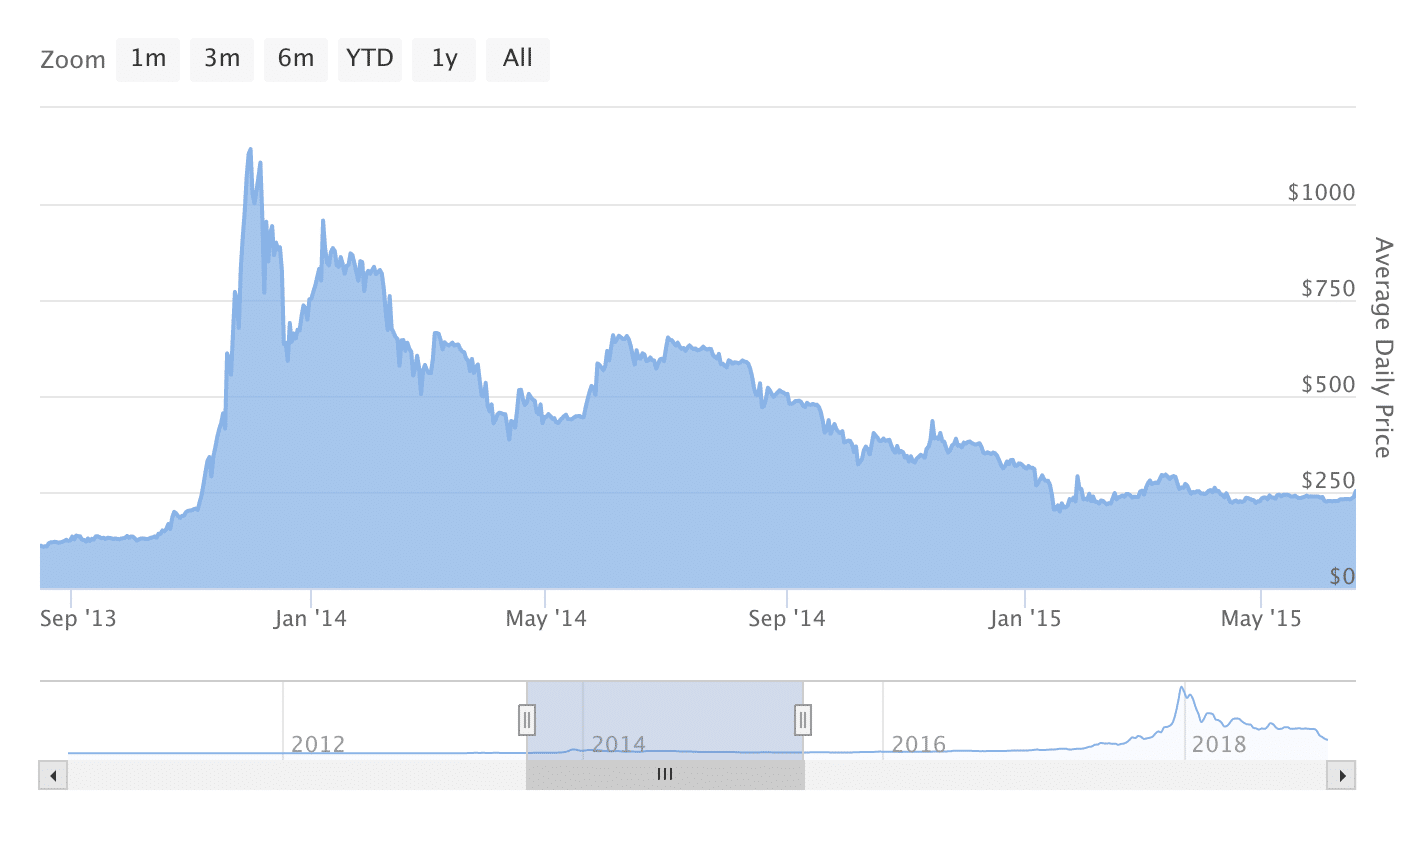 Bitcoin prices chart for 2014-2015